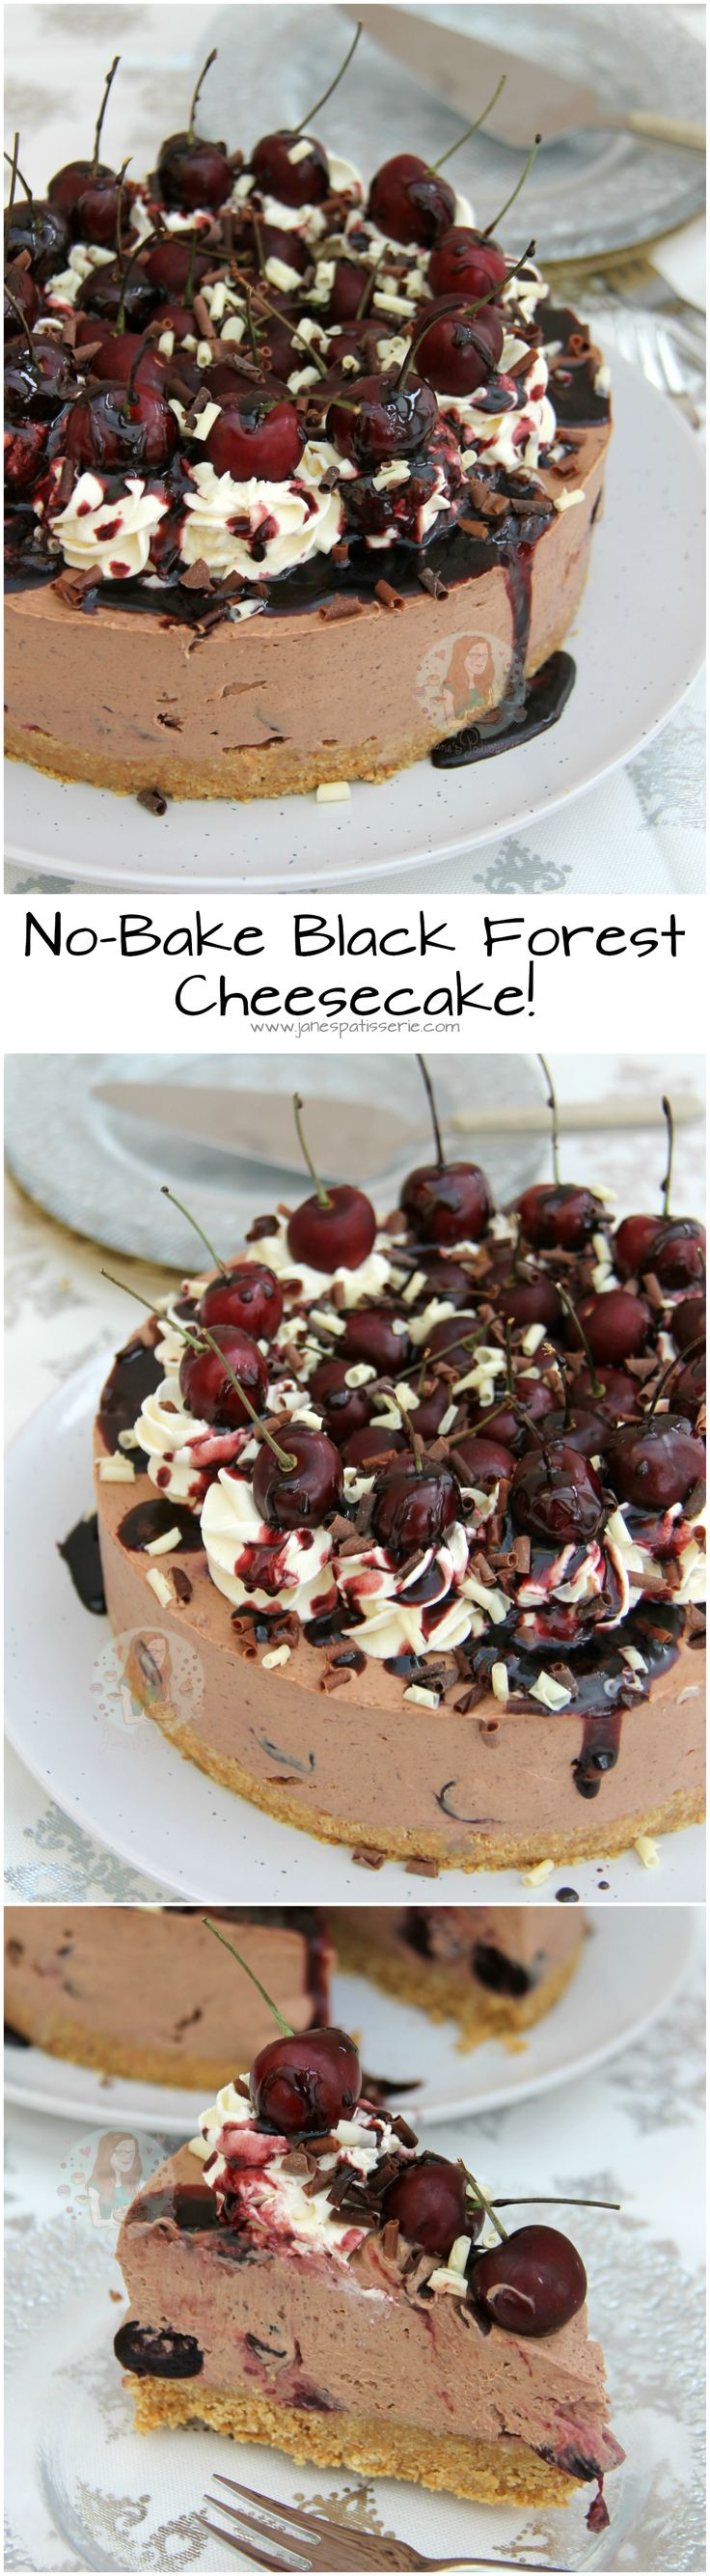 No-Bake Black Forest Cheesecake!! Biscuit Base, Chocolate & Cherry Kirsch Cheesecake Filling, Vanilla Cheesecake, Fresh Cherries & even more Chocolate.